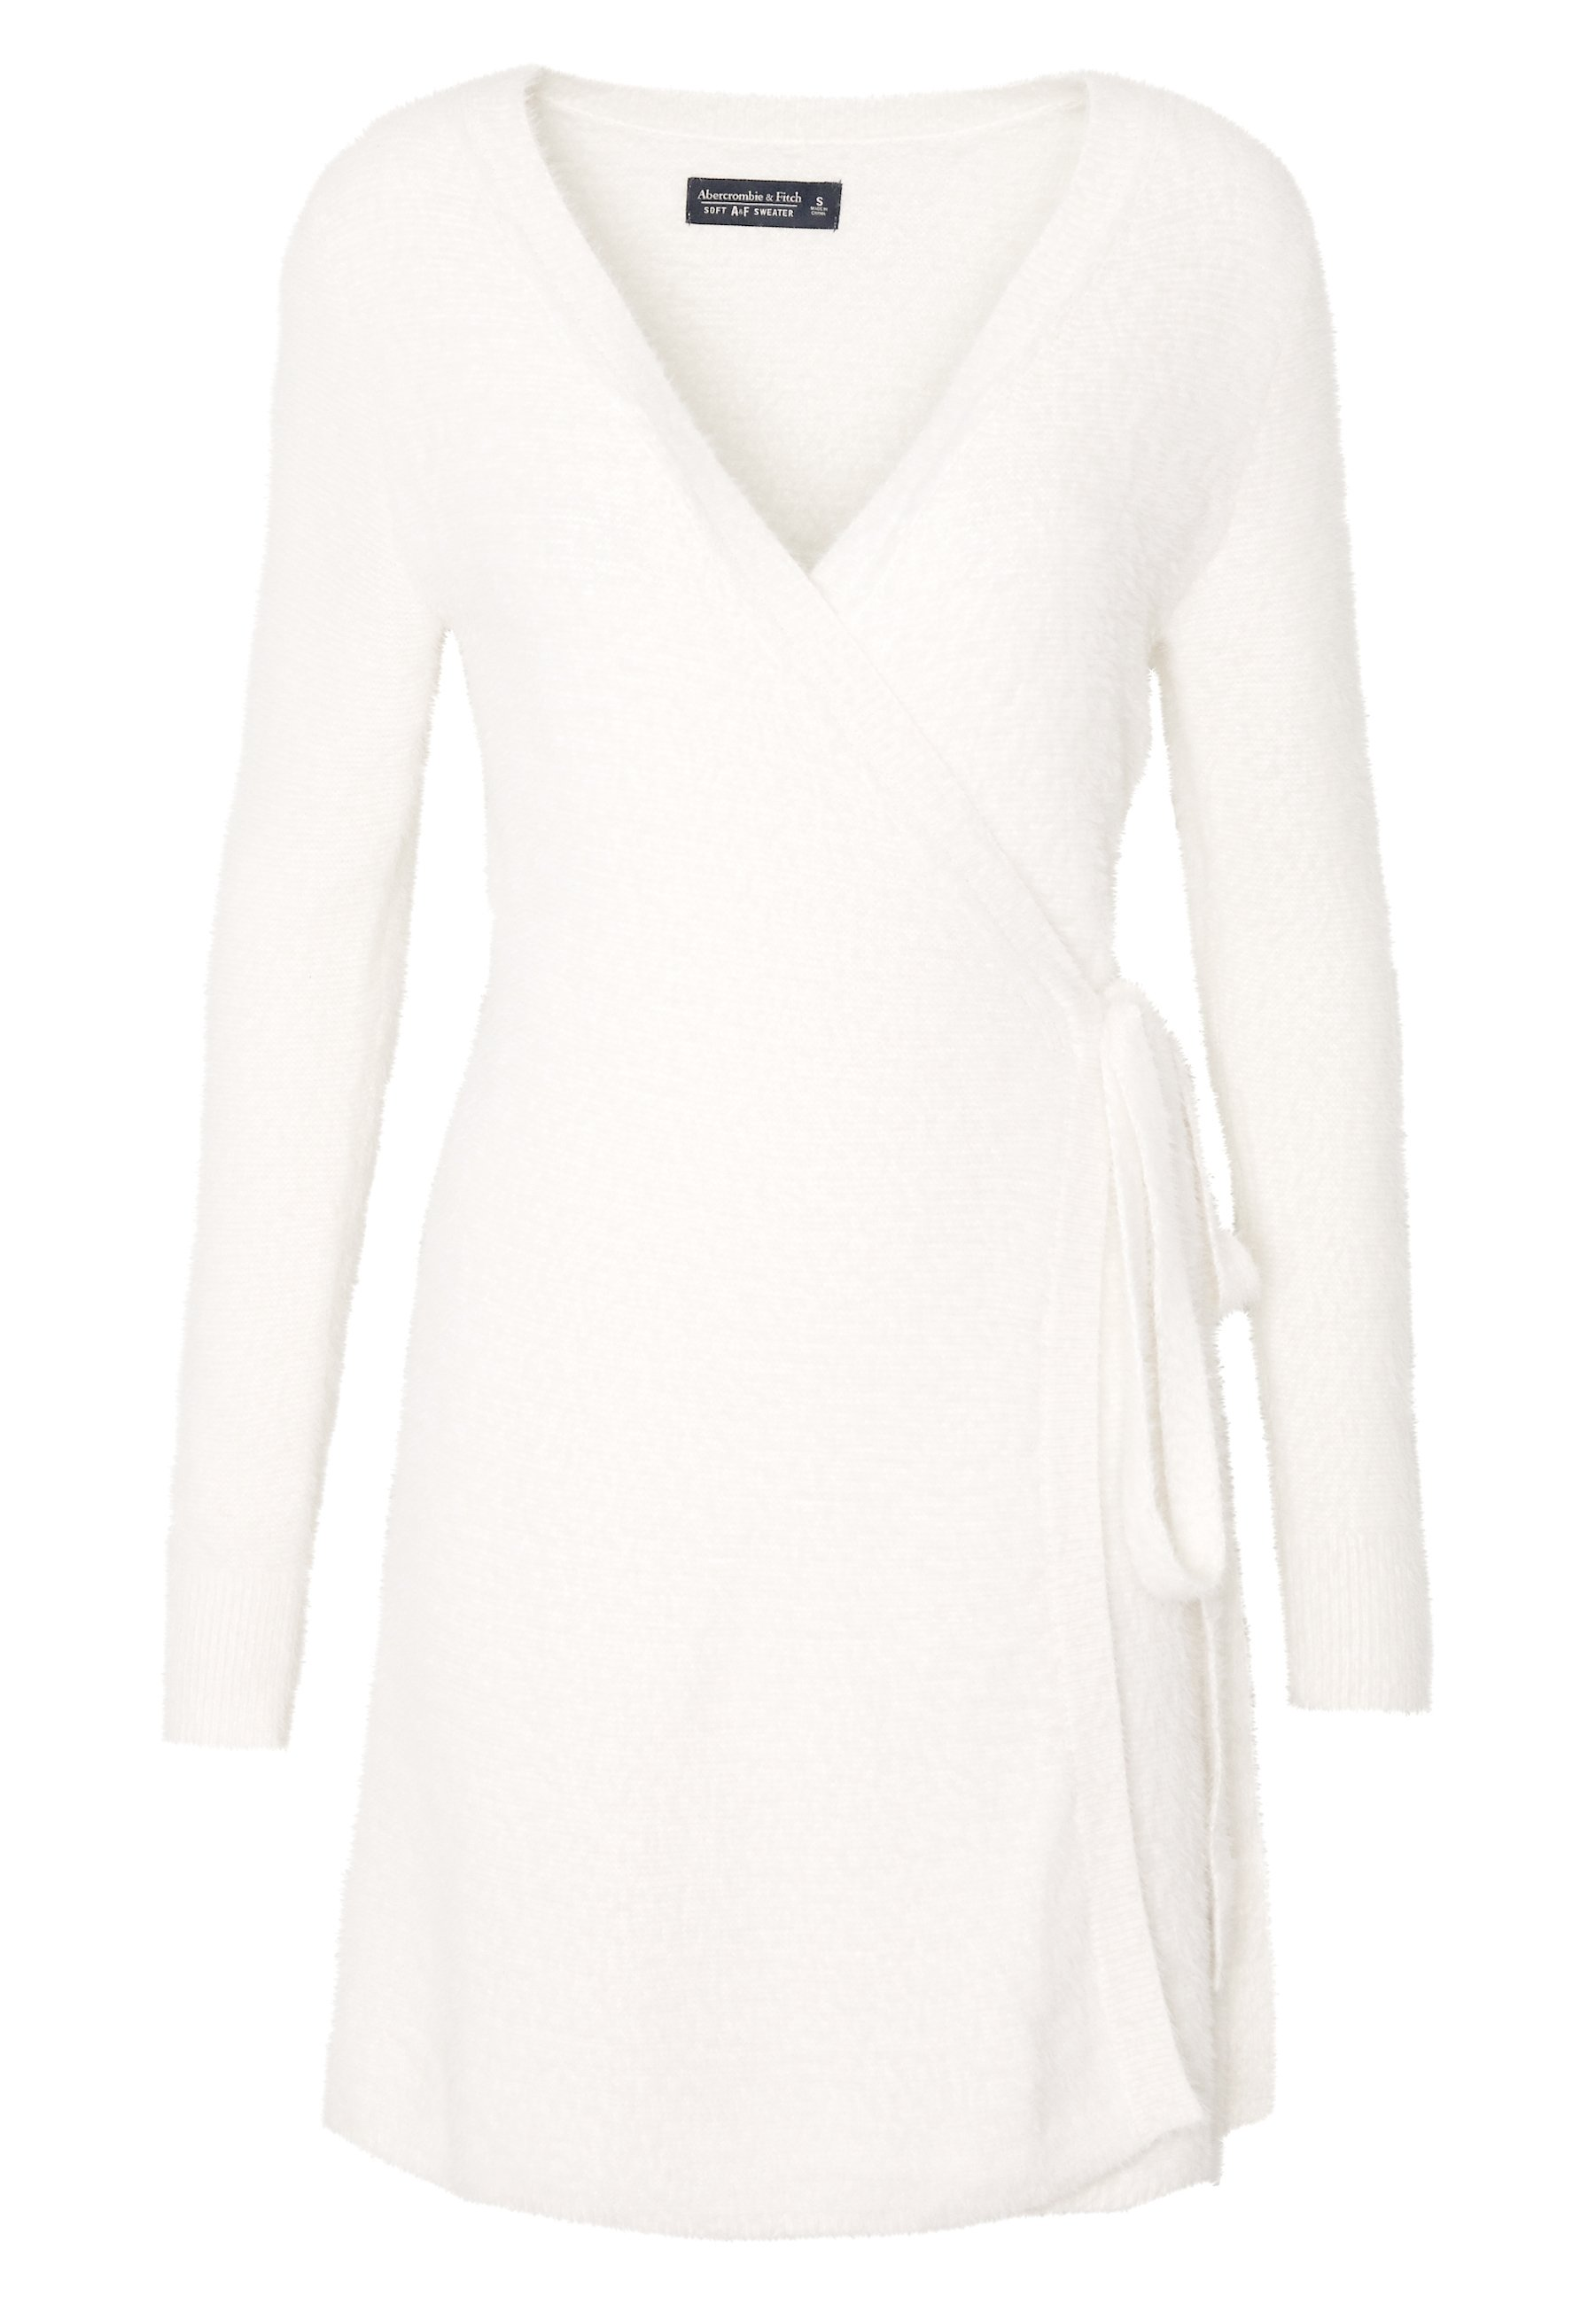 Abercrombie & Fitch Sweater Dress - Cardigan Cream zuxEBhP